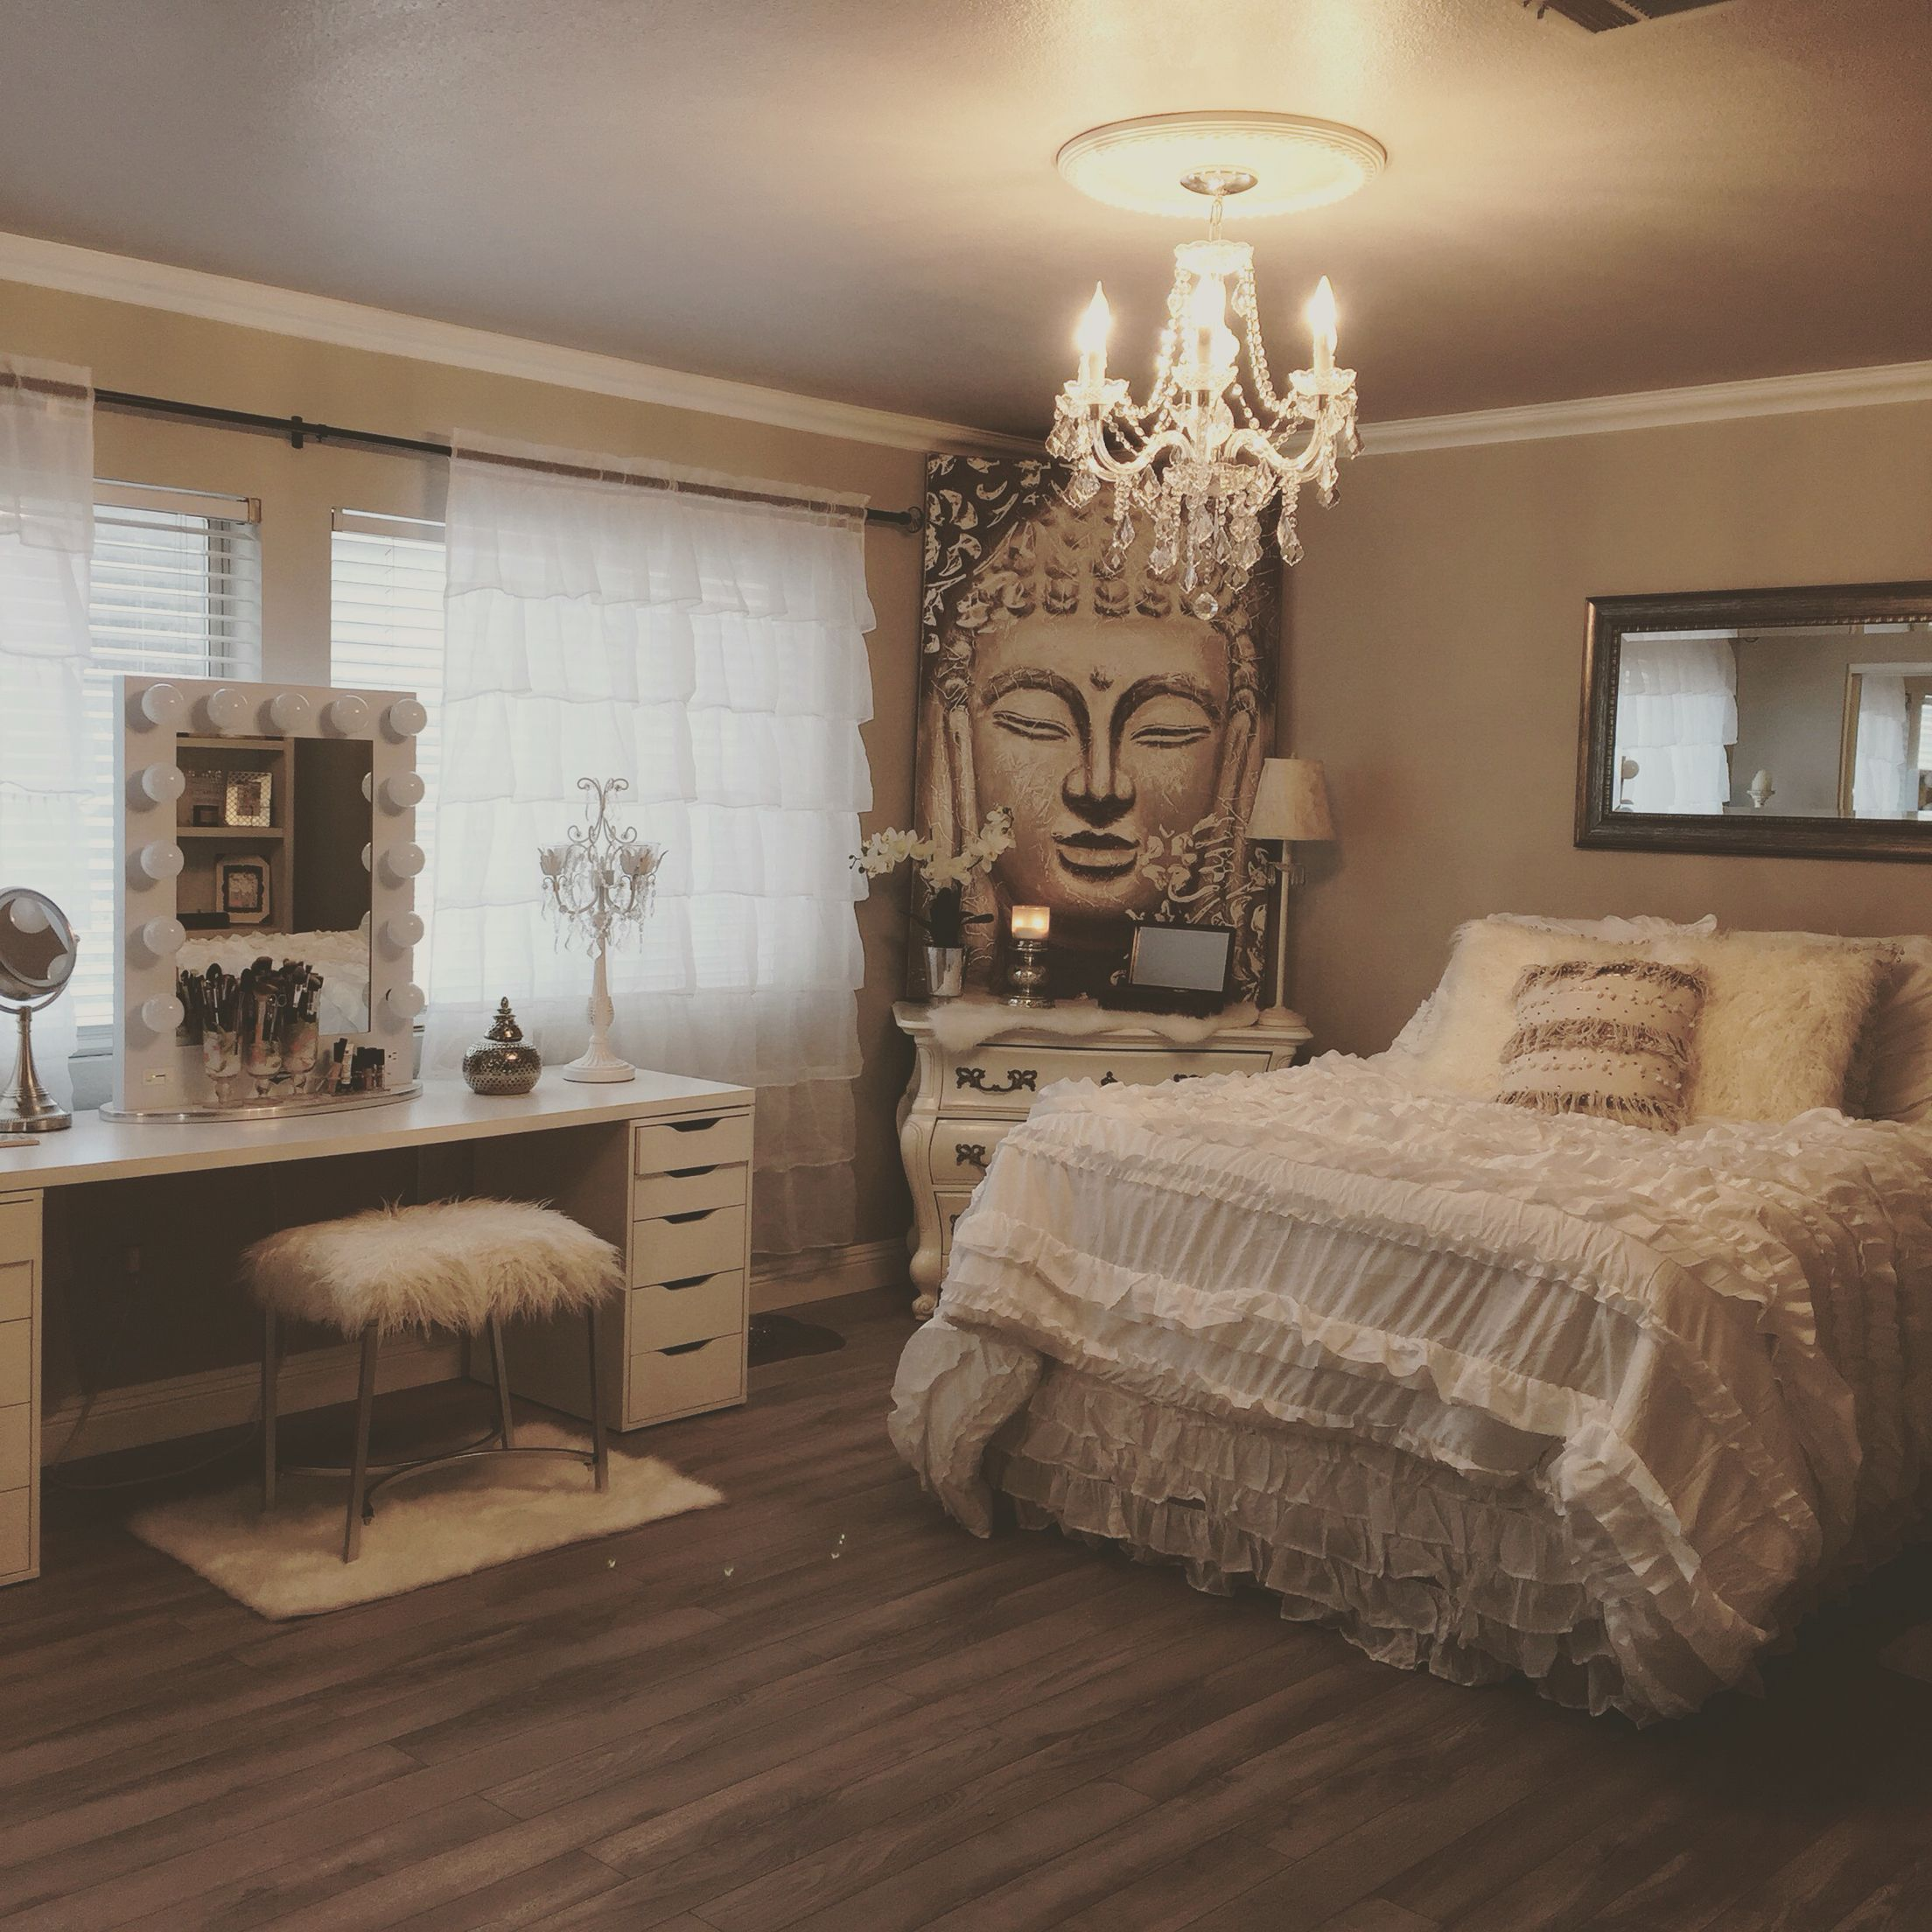 Shabby chic meets zen glam my new bedroom pinterest for Items to decorate bedroom